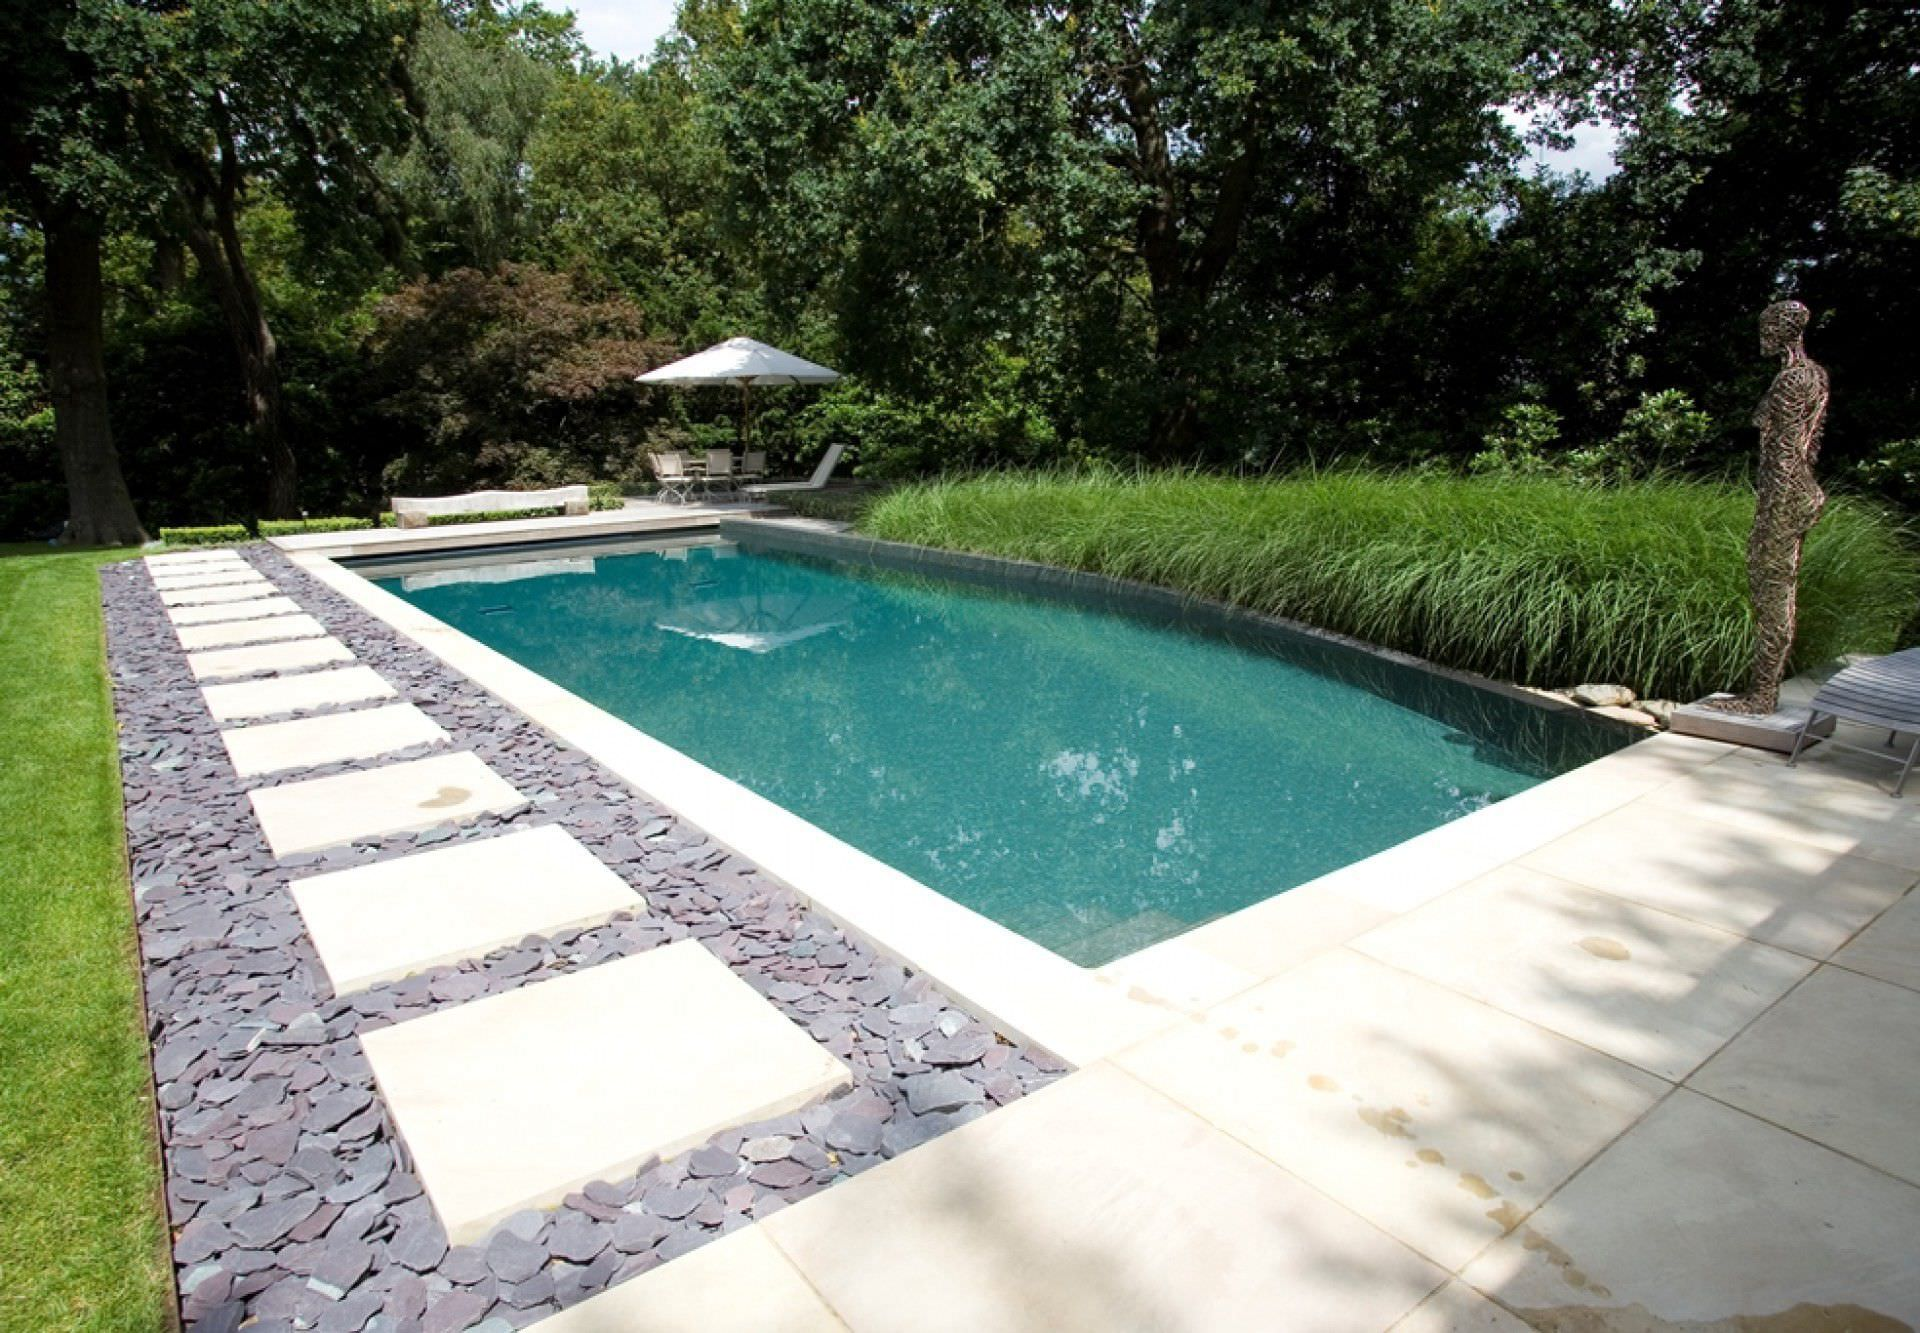 Outdoor natural pool  In-ground swimming pool / concrete / natural / outdoor - SURREY ...